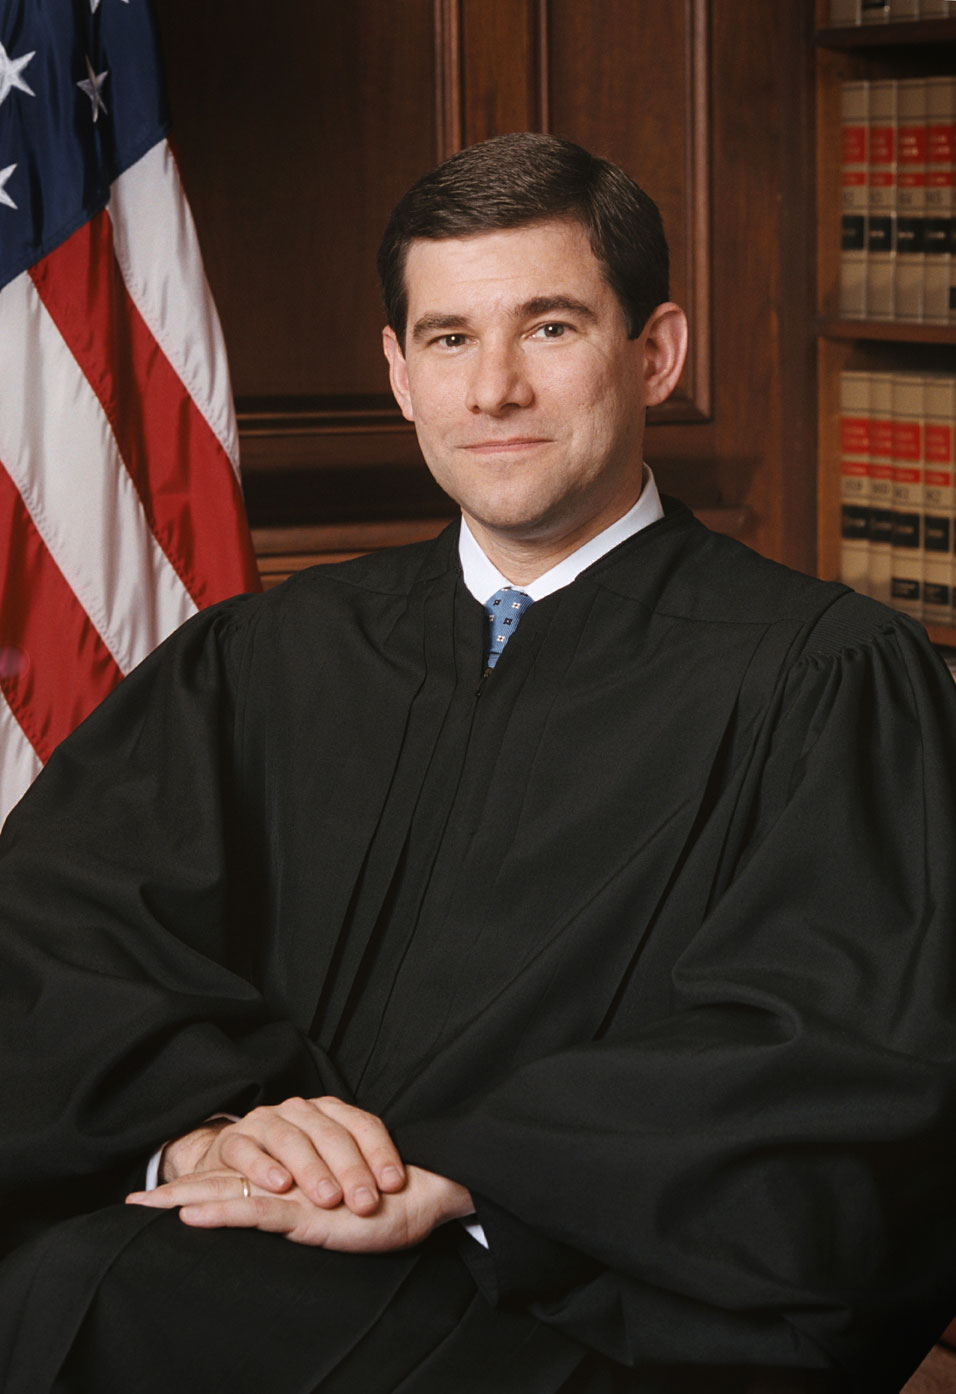 Judge Pryor